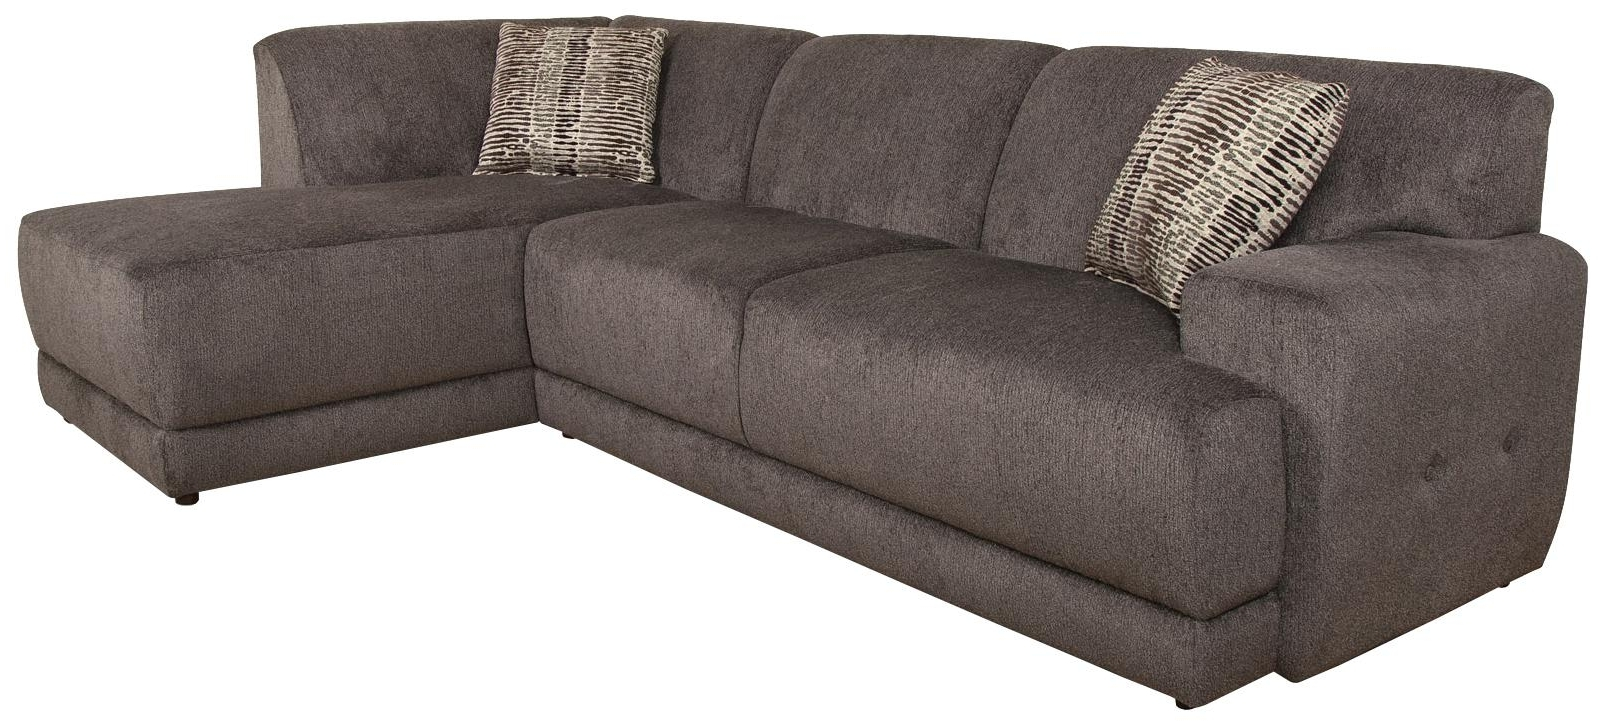 Well Known England Sectional Sofas Intended For England Cole Contemporary Sectional Sofa With Right Facing Chaise (View 17 of 20)